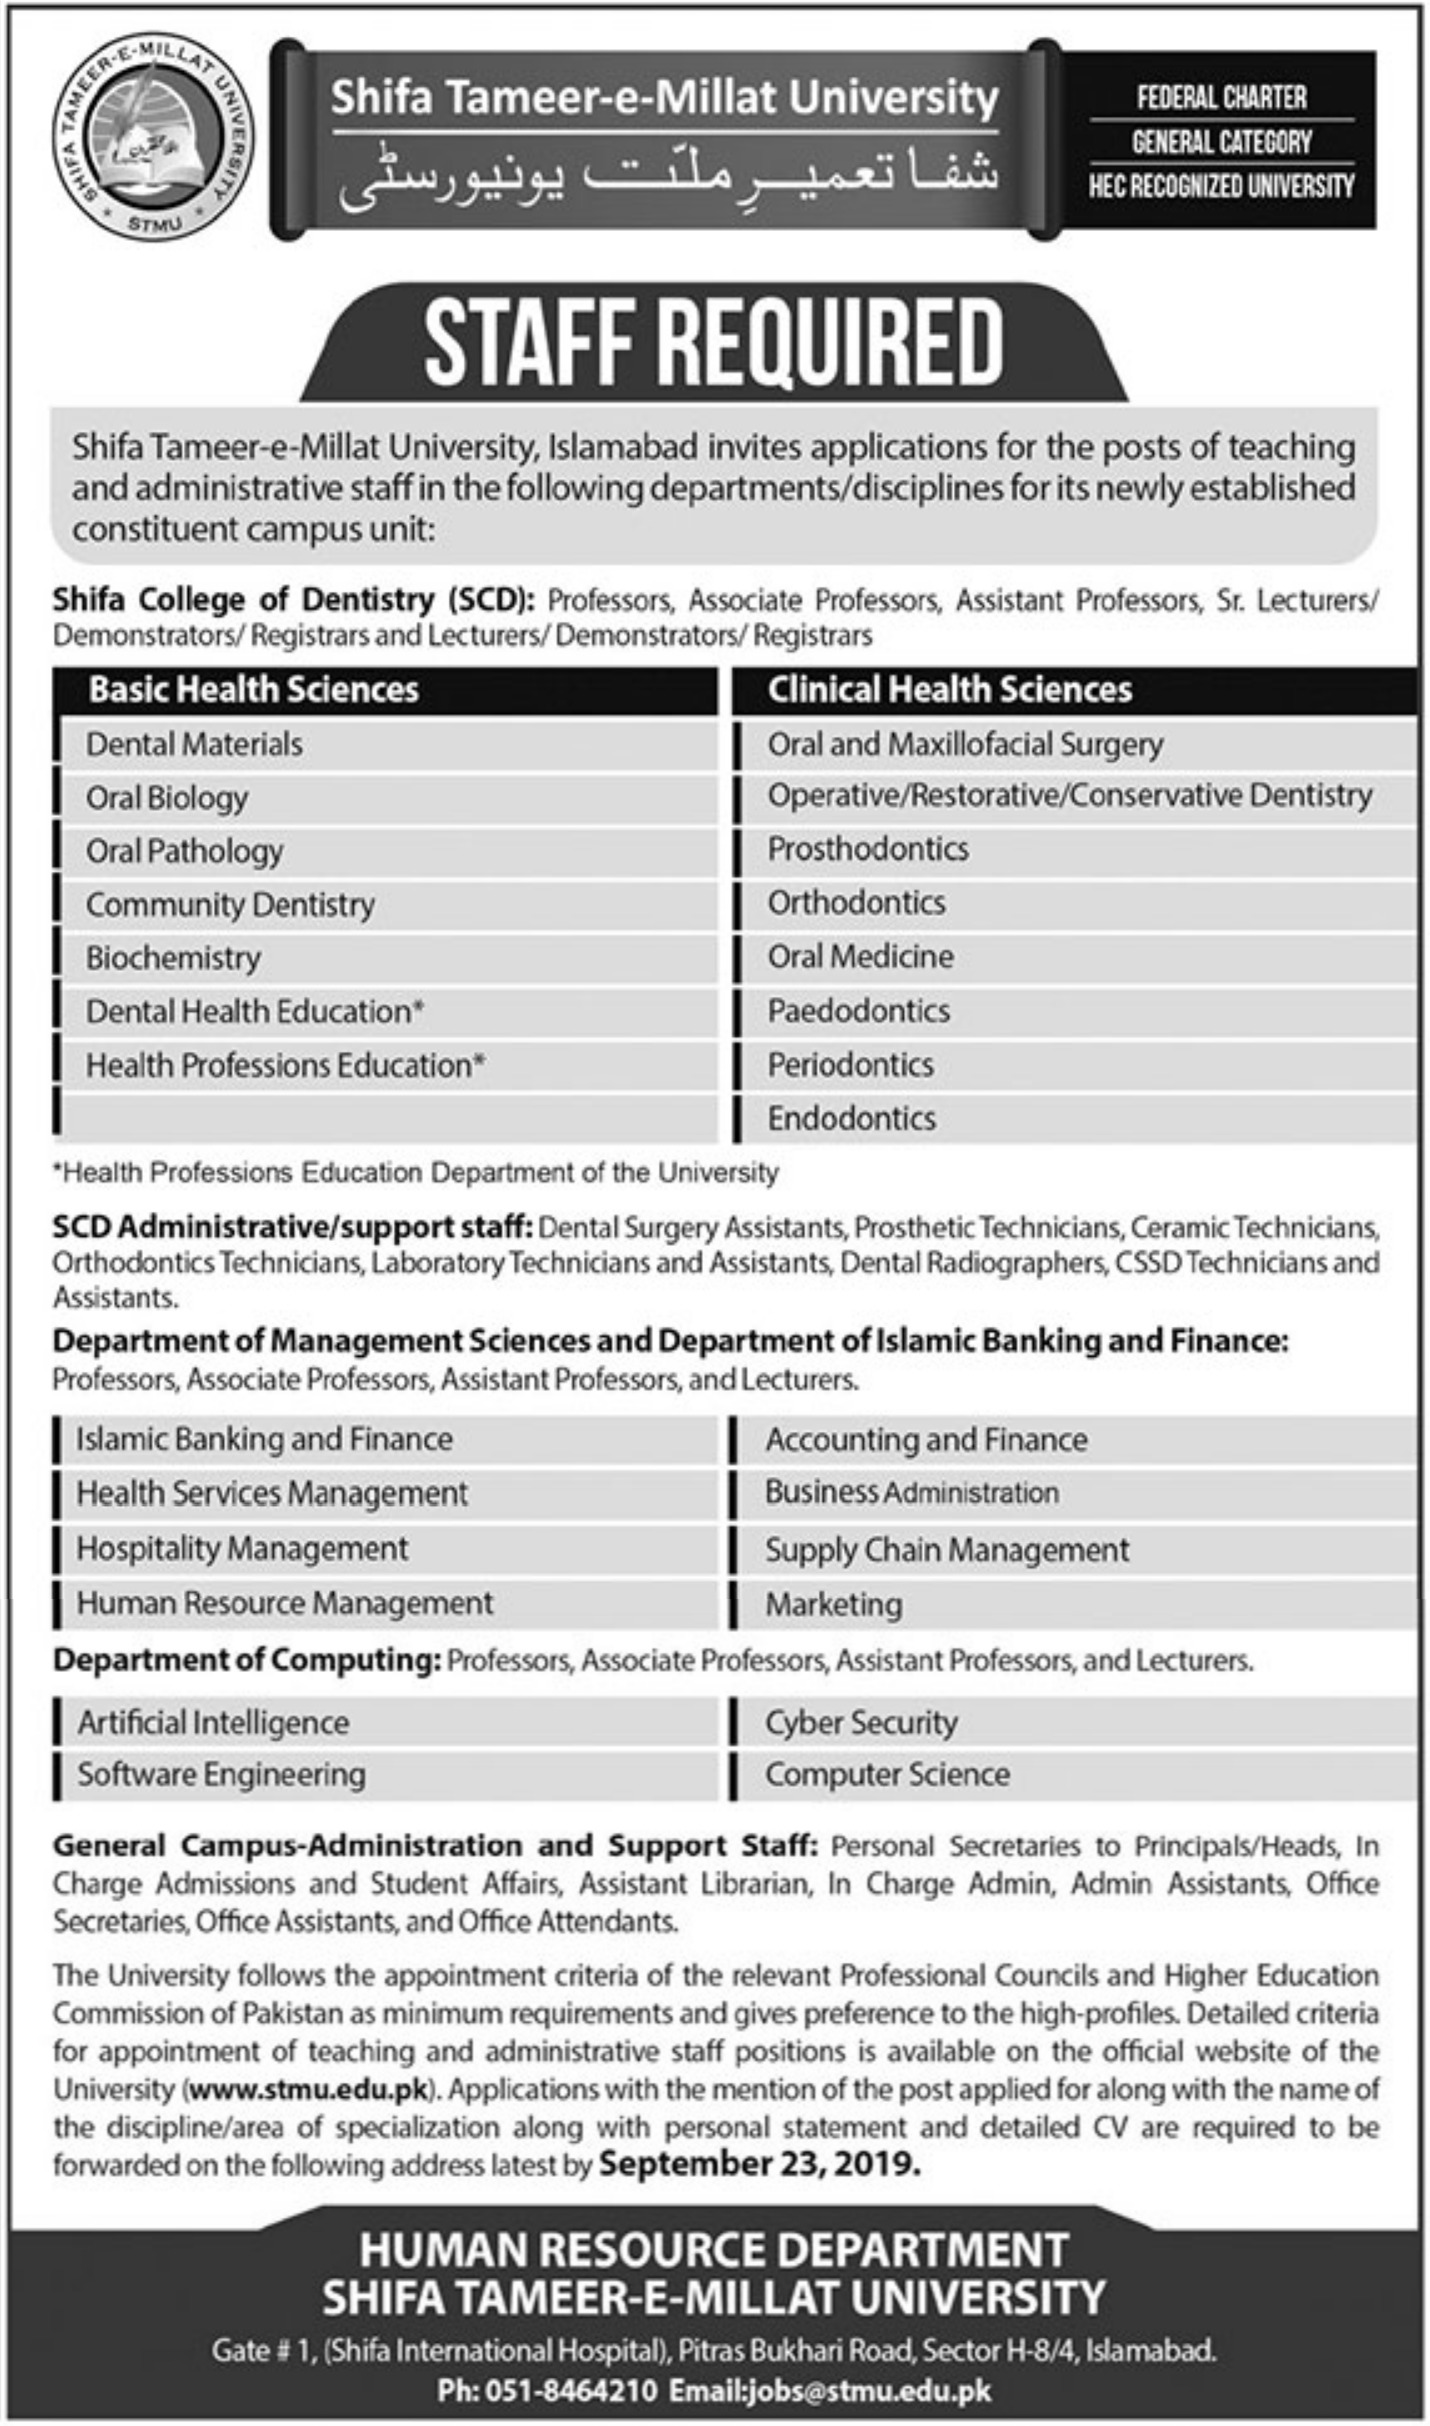 Shifa Tameer-e-Millat University Jobs 2019 Islamabad